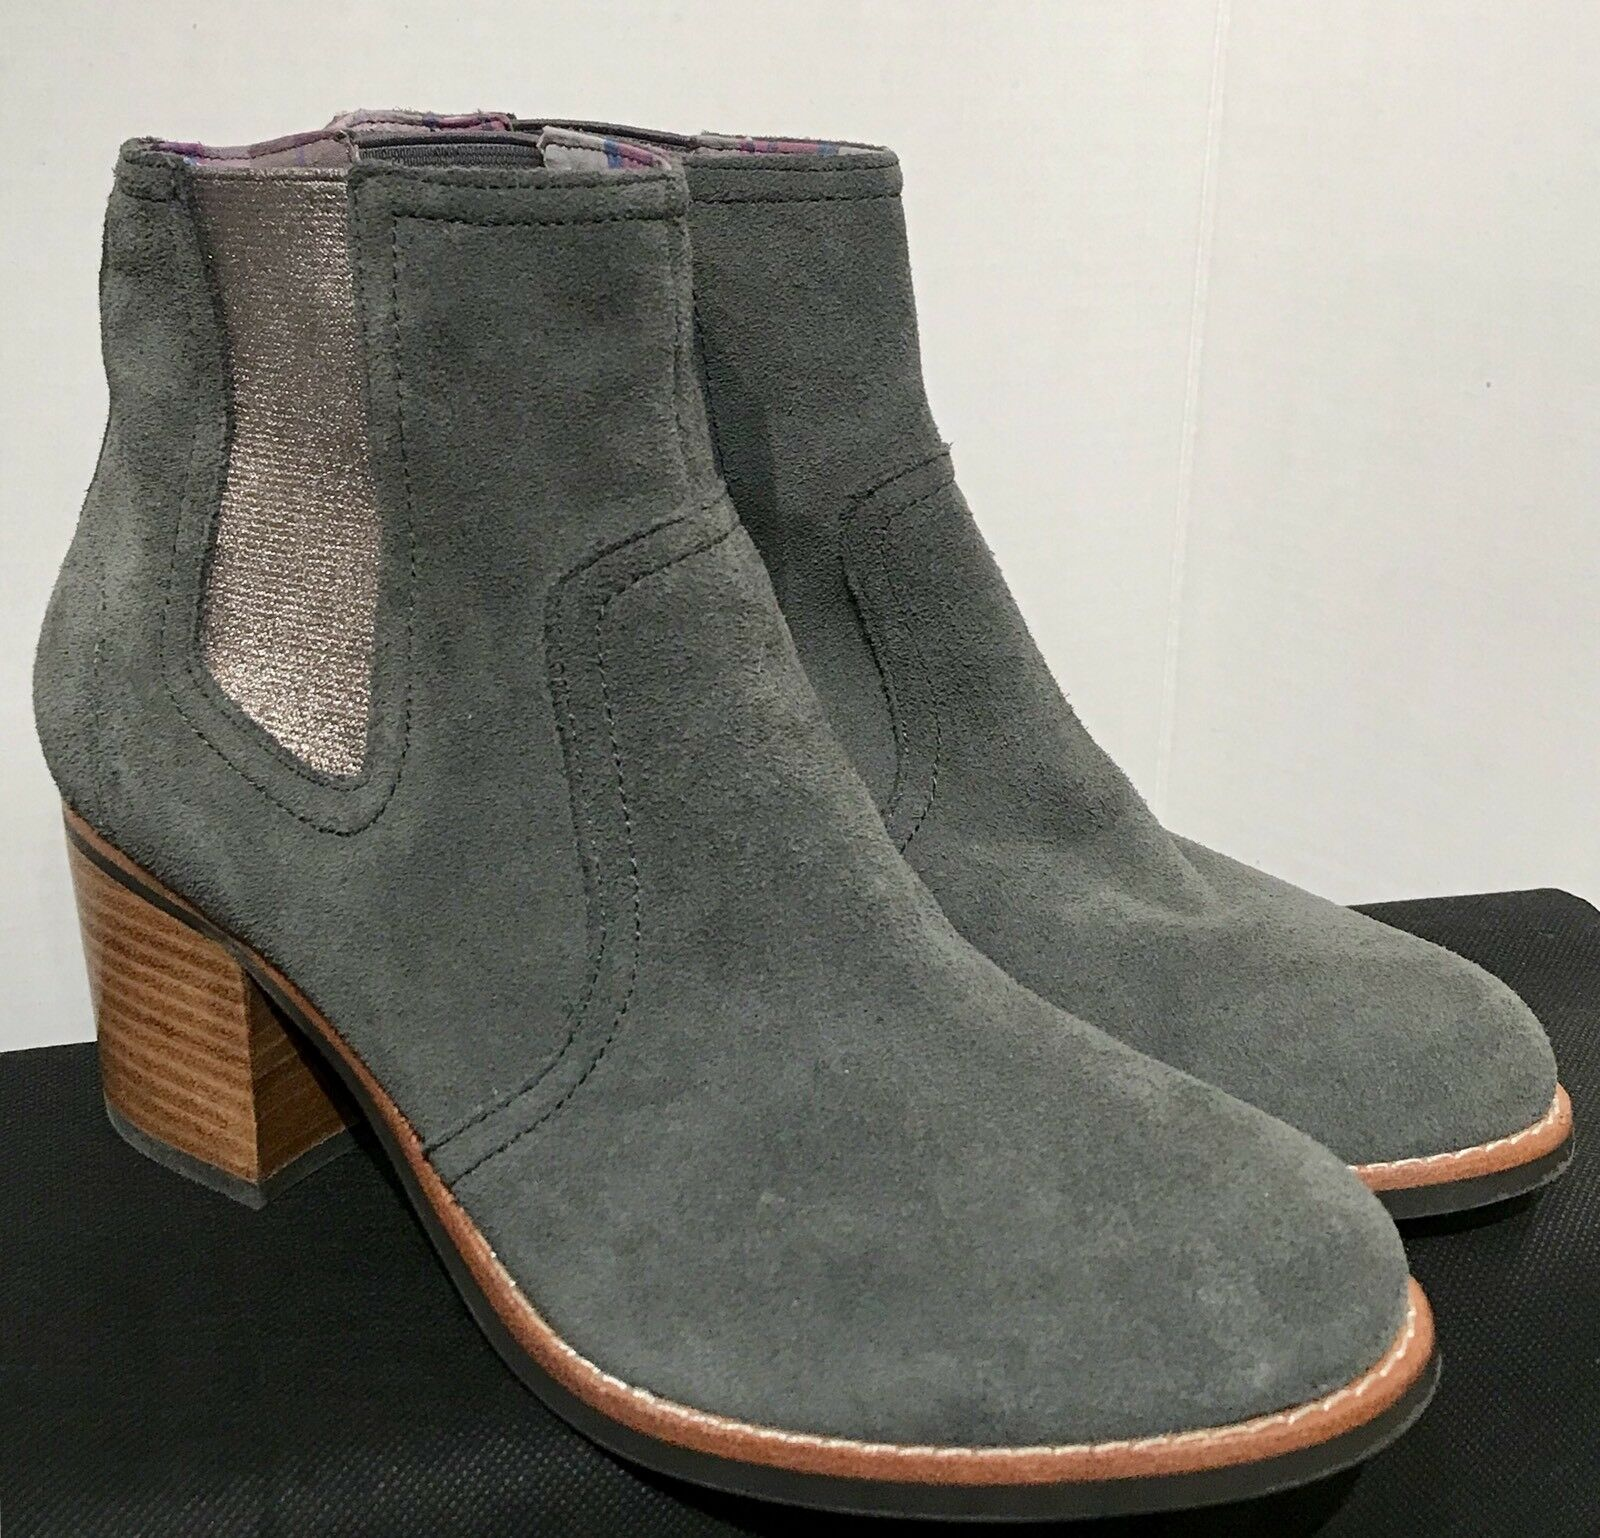 SPERRY TOP-SIDER Ankle Stiefel MARLOW 8.5 GRAY SUEDE Schuhe SIZE: 8.5 MARLOW M NWOB a870e4